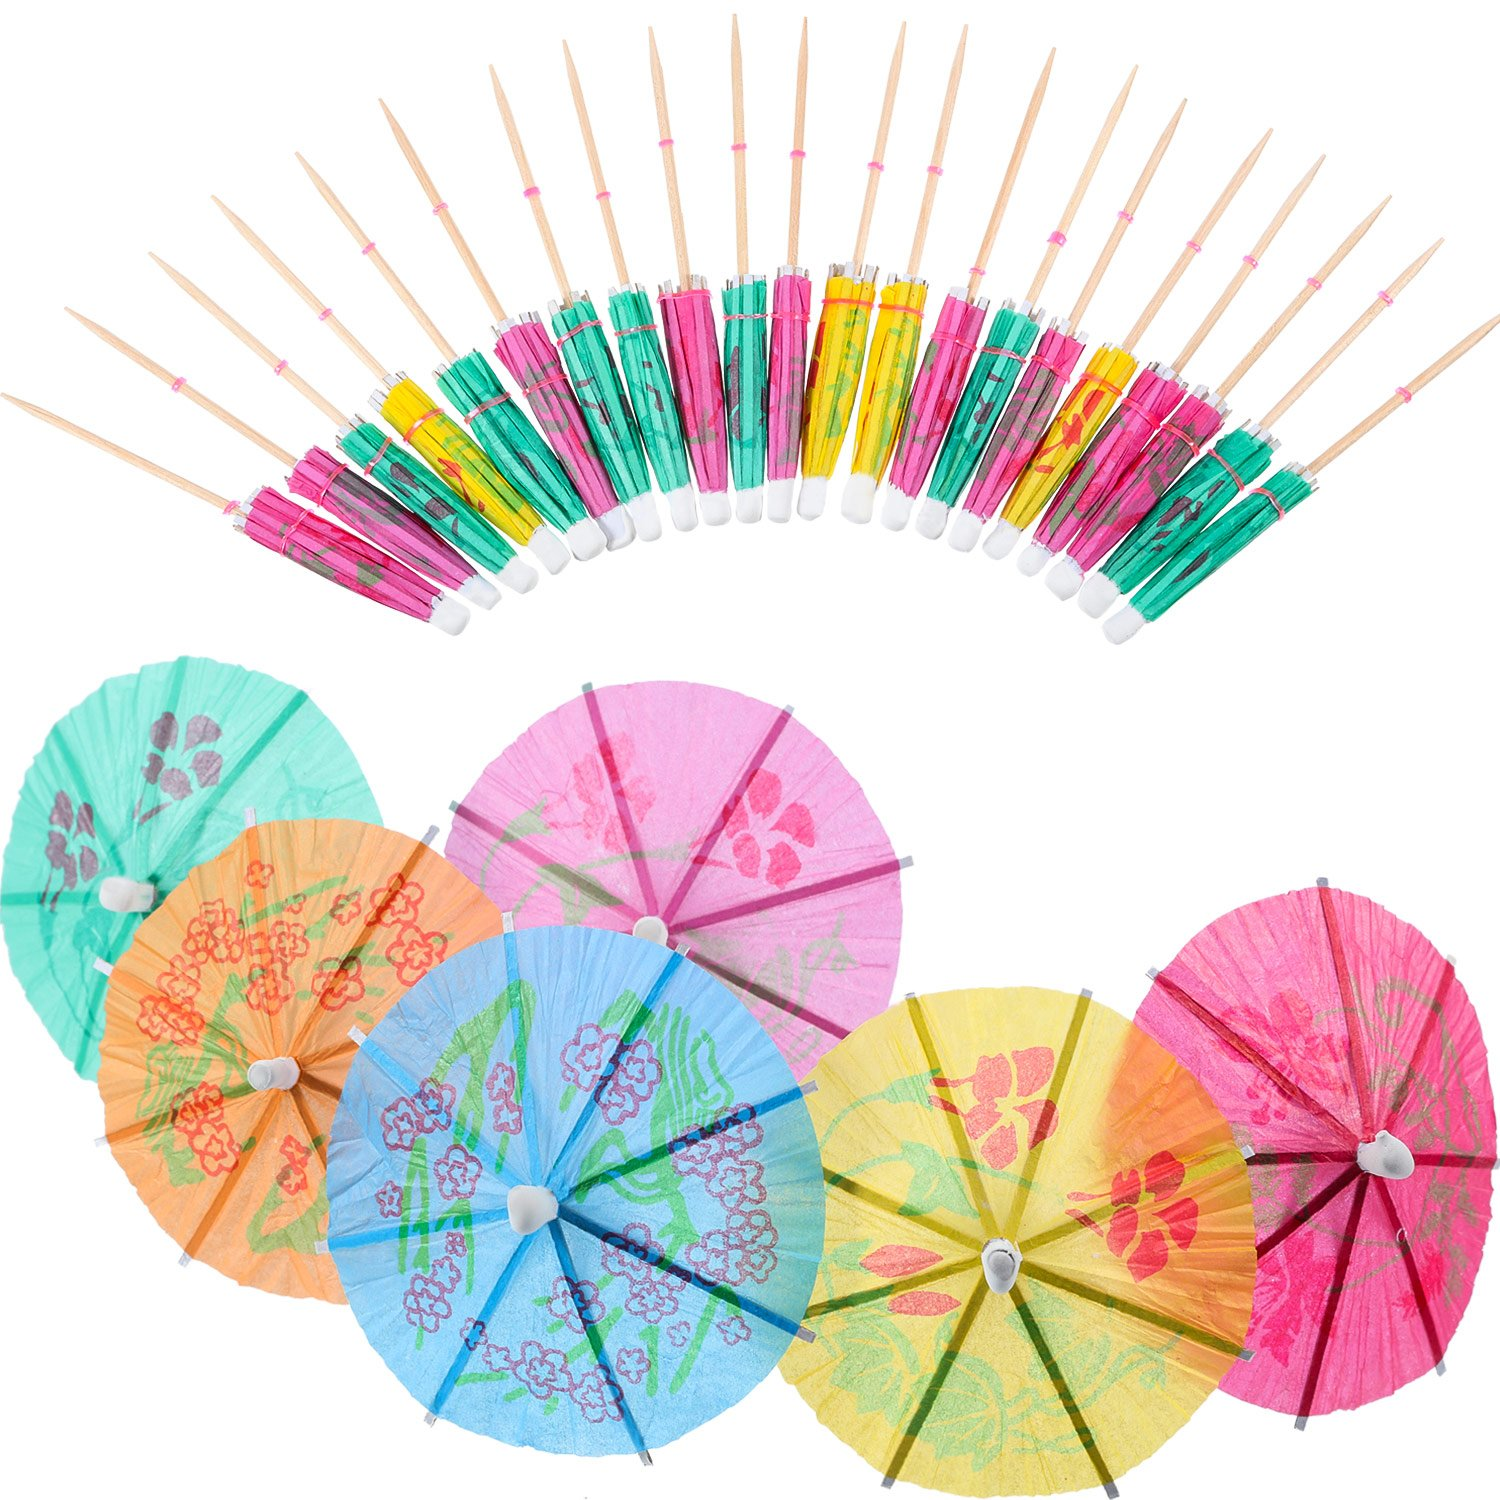 150 Pieces 4 inch Cocktail Umbrellas Parasol Cocktail Picks Cupcake Toppers, Assorted Colors Jovitec